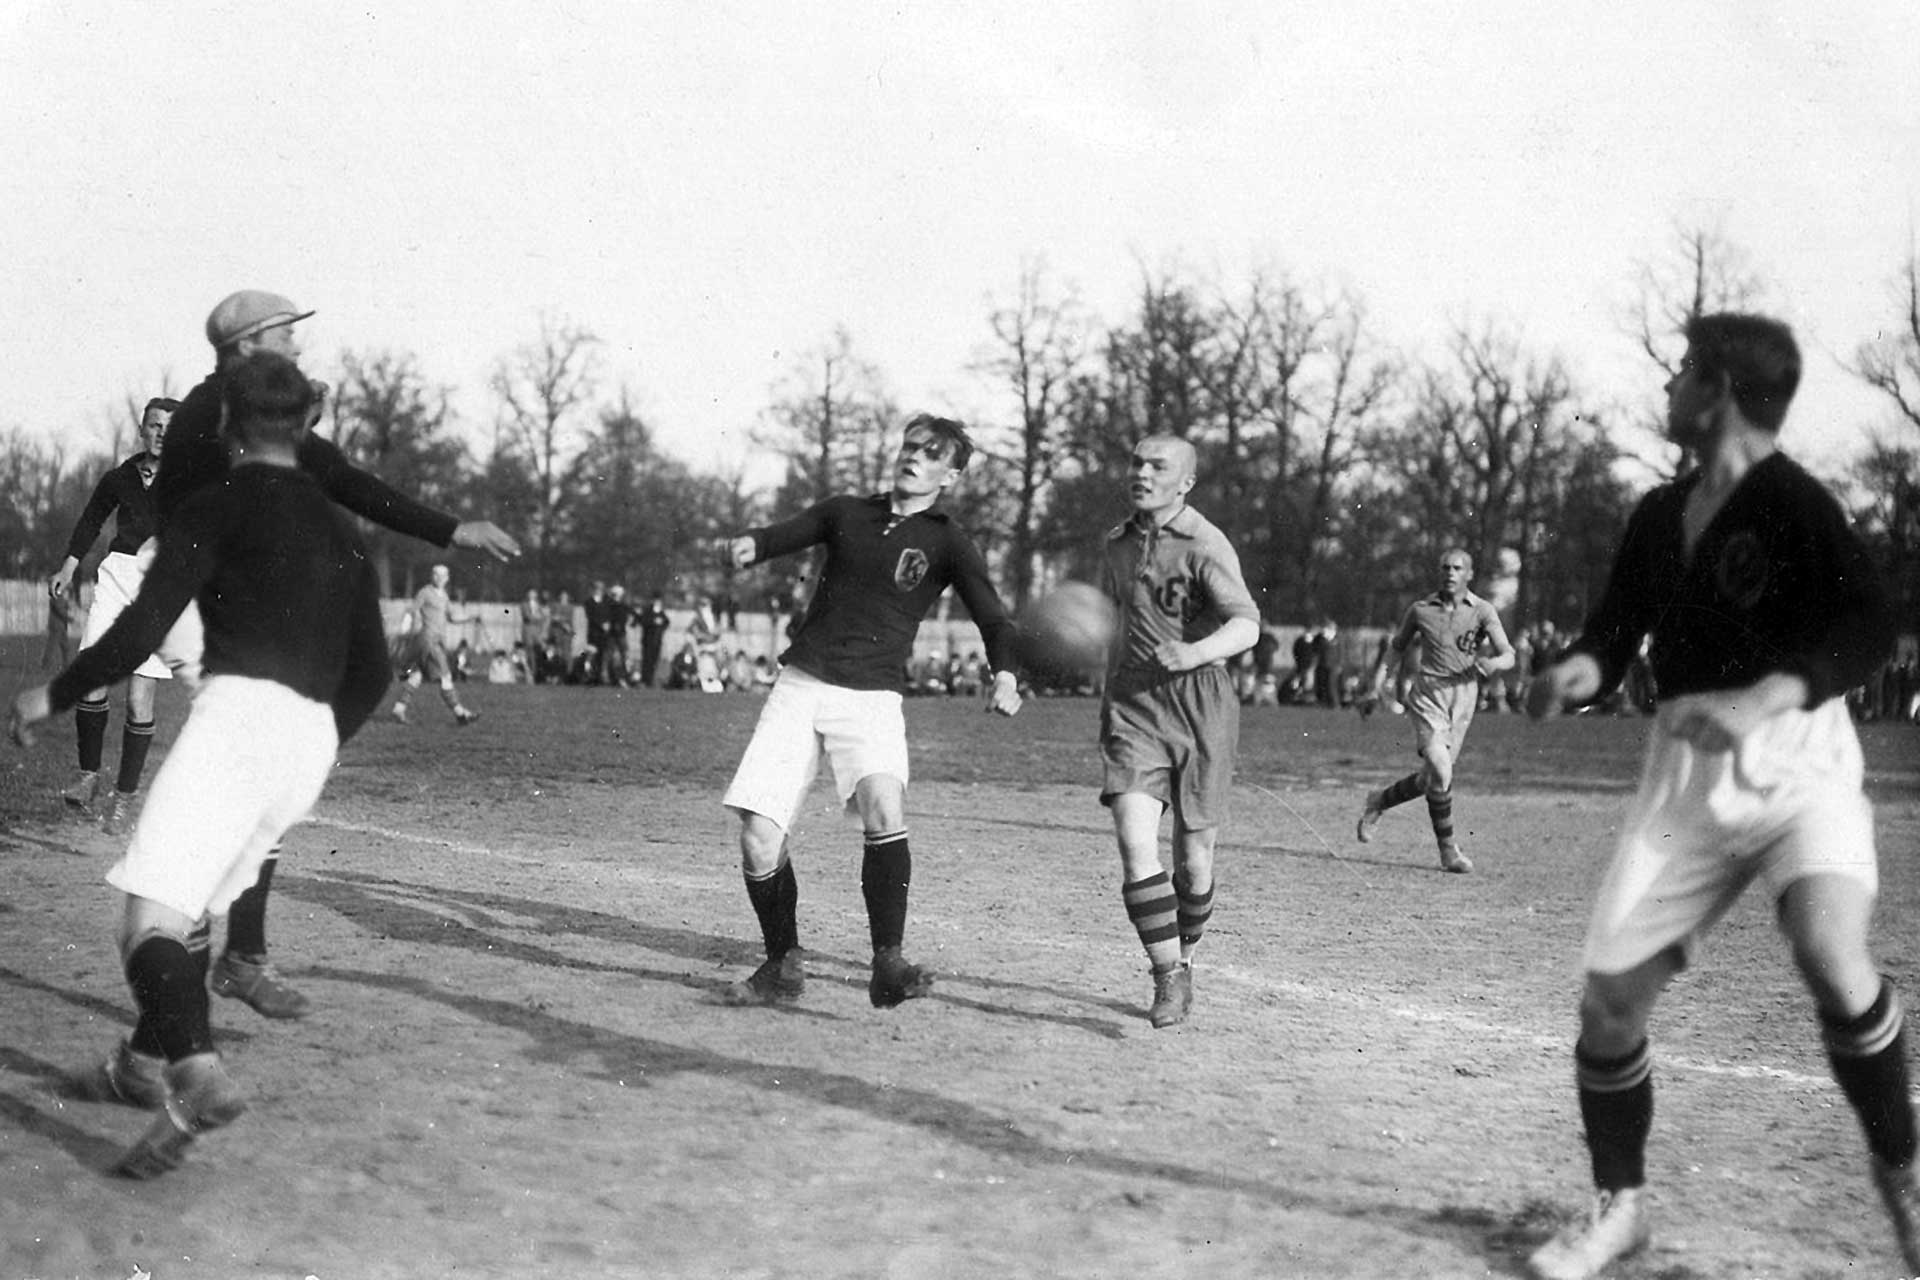 Marcinkus rushing to the ball, 18th of May 1928 (Photo: Svetys)